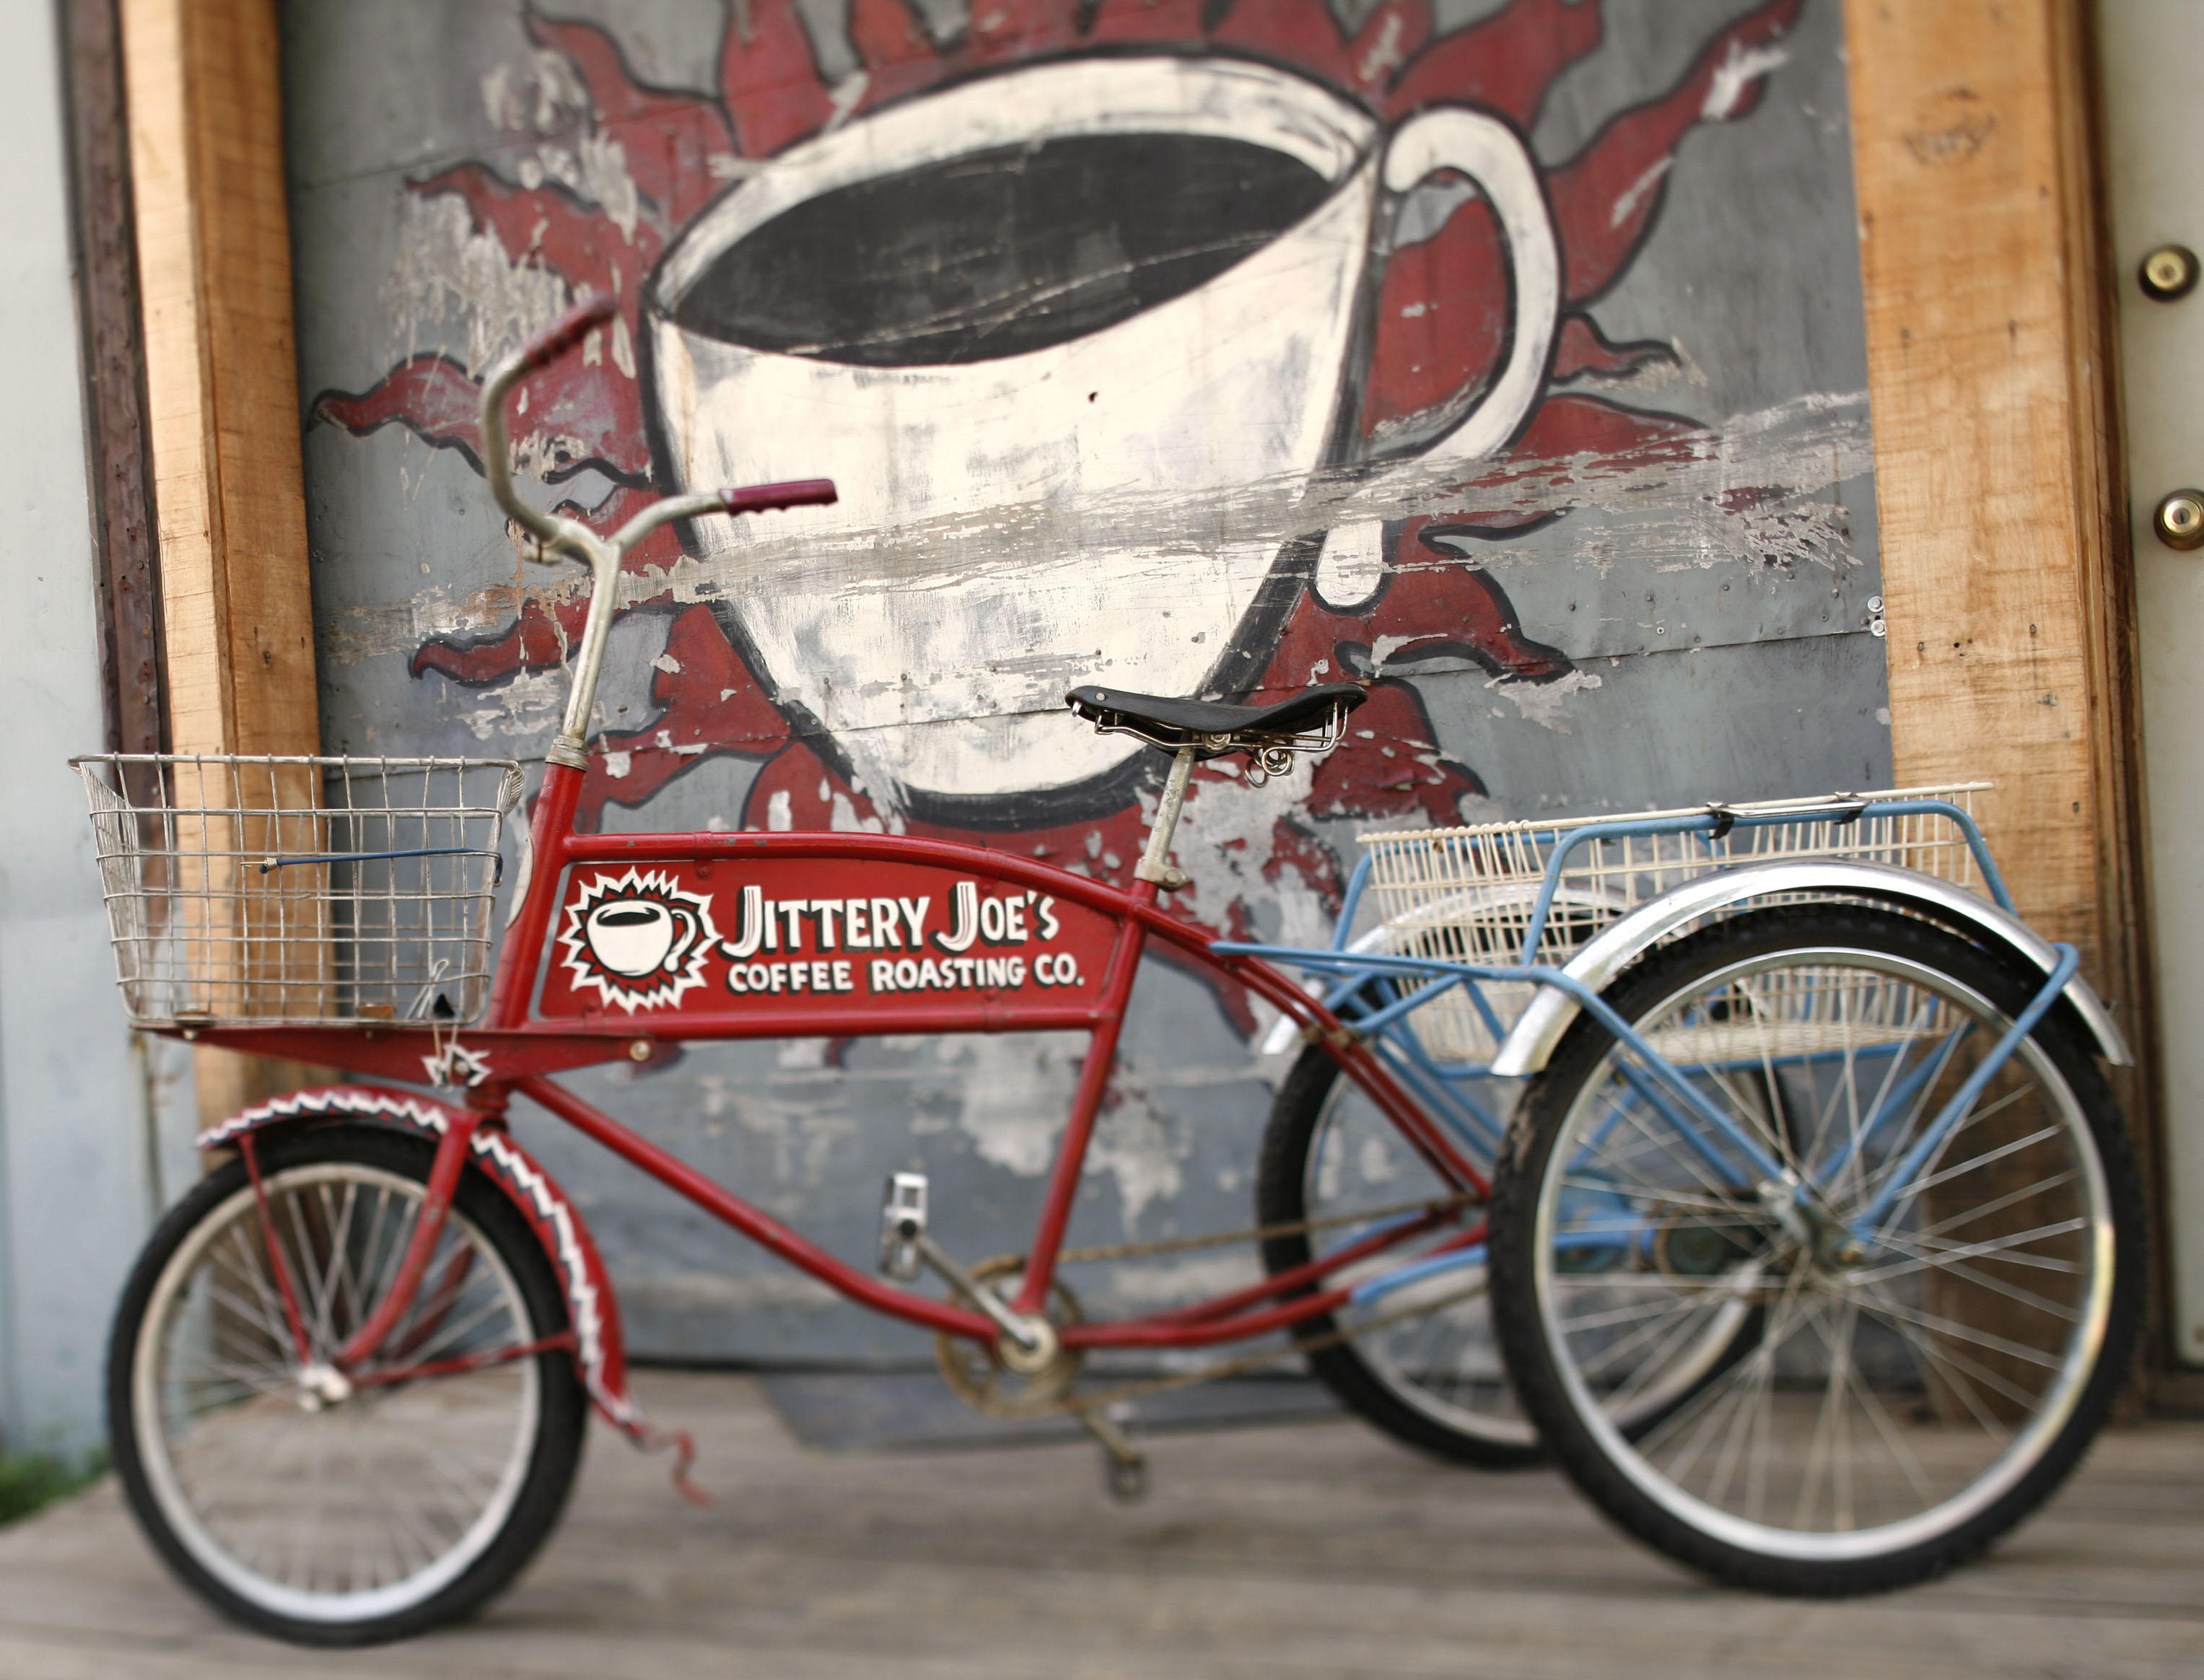 Jittery Joes Coffee Roasting Company Low Jitter Sige Vcsos Delivery Trike